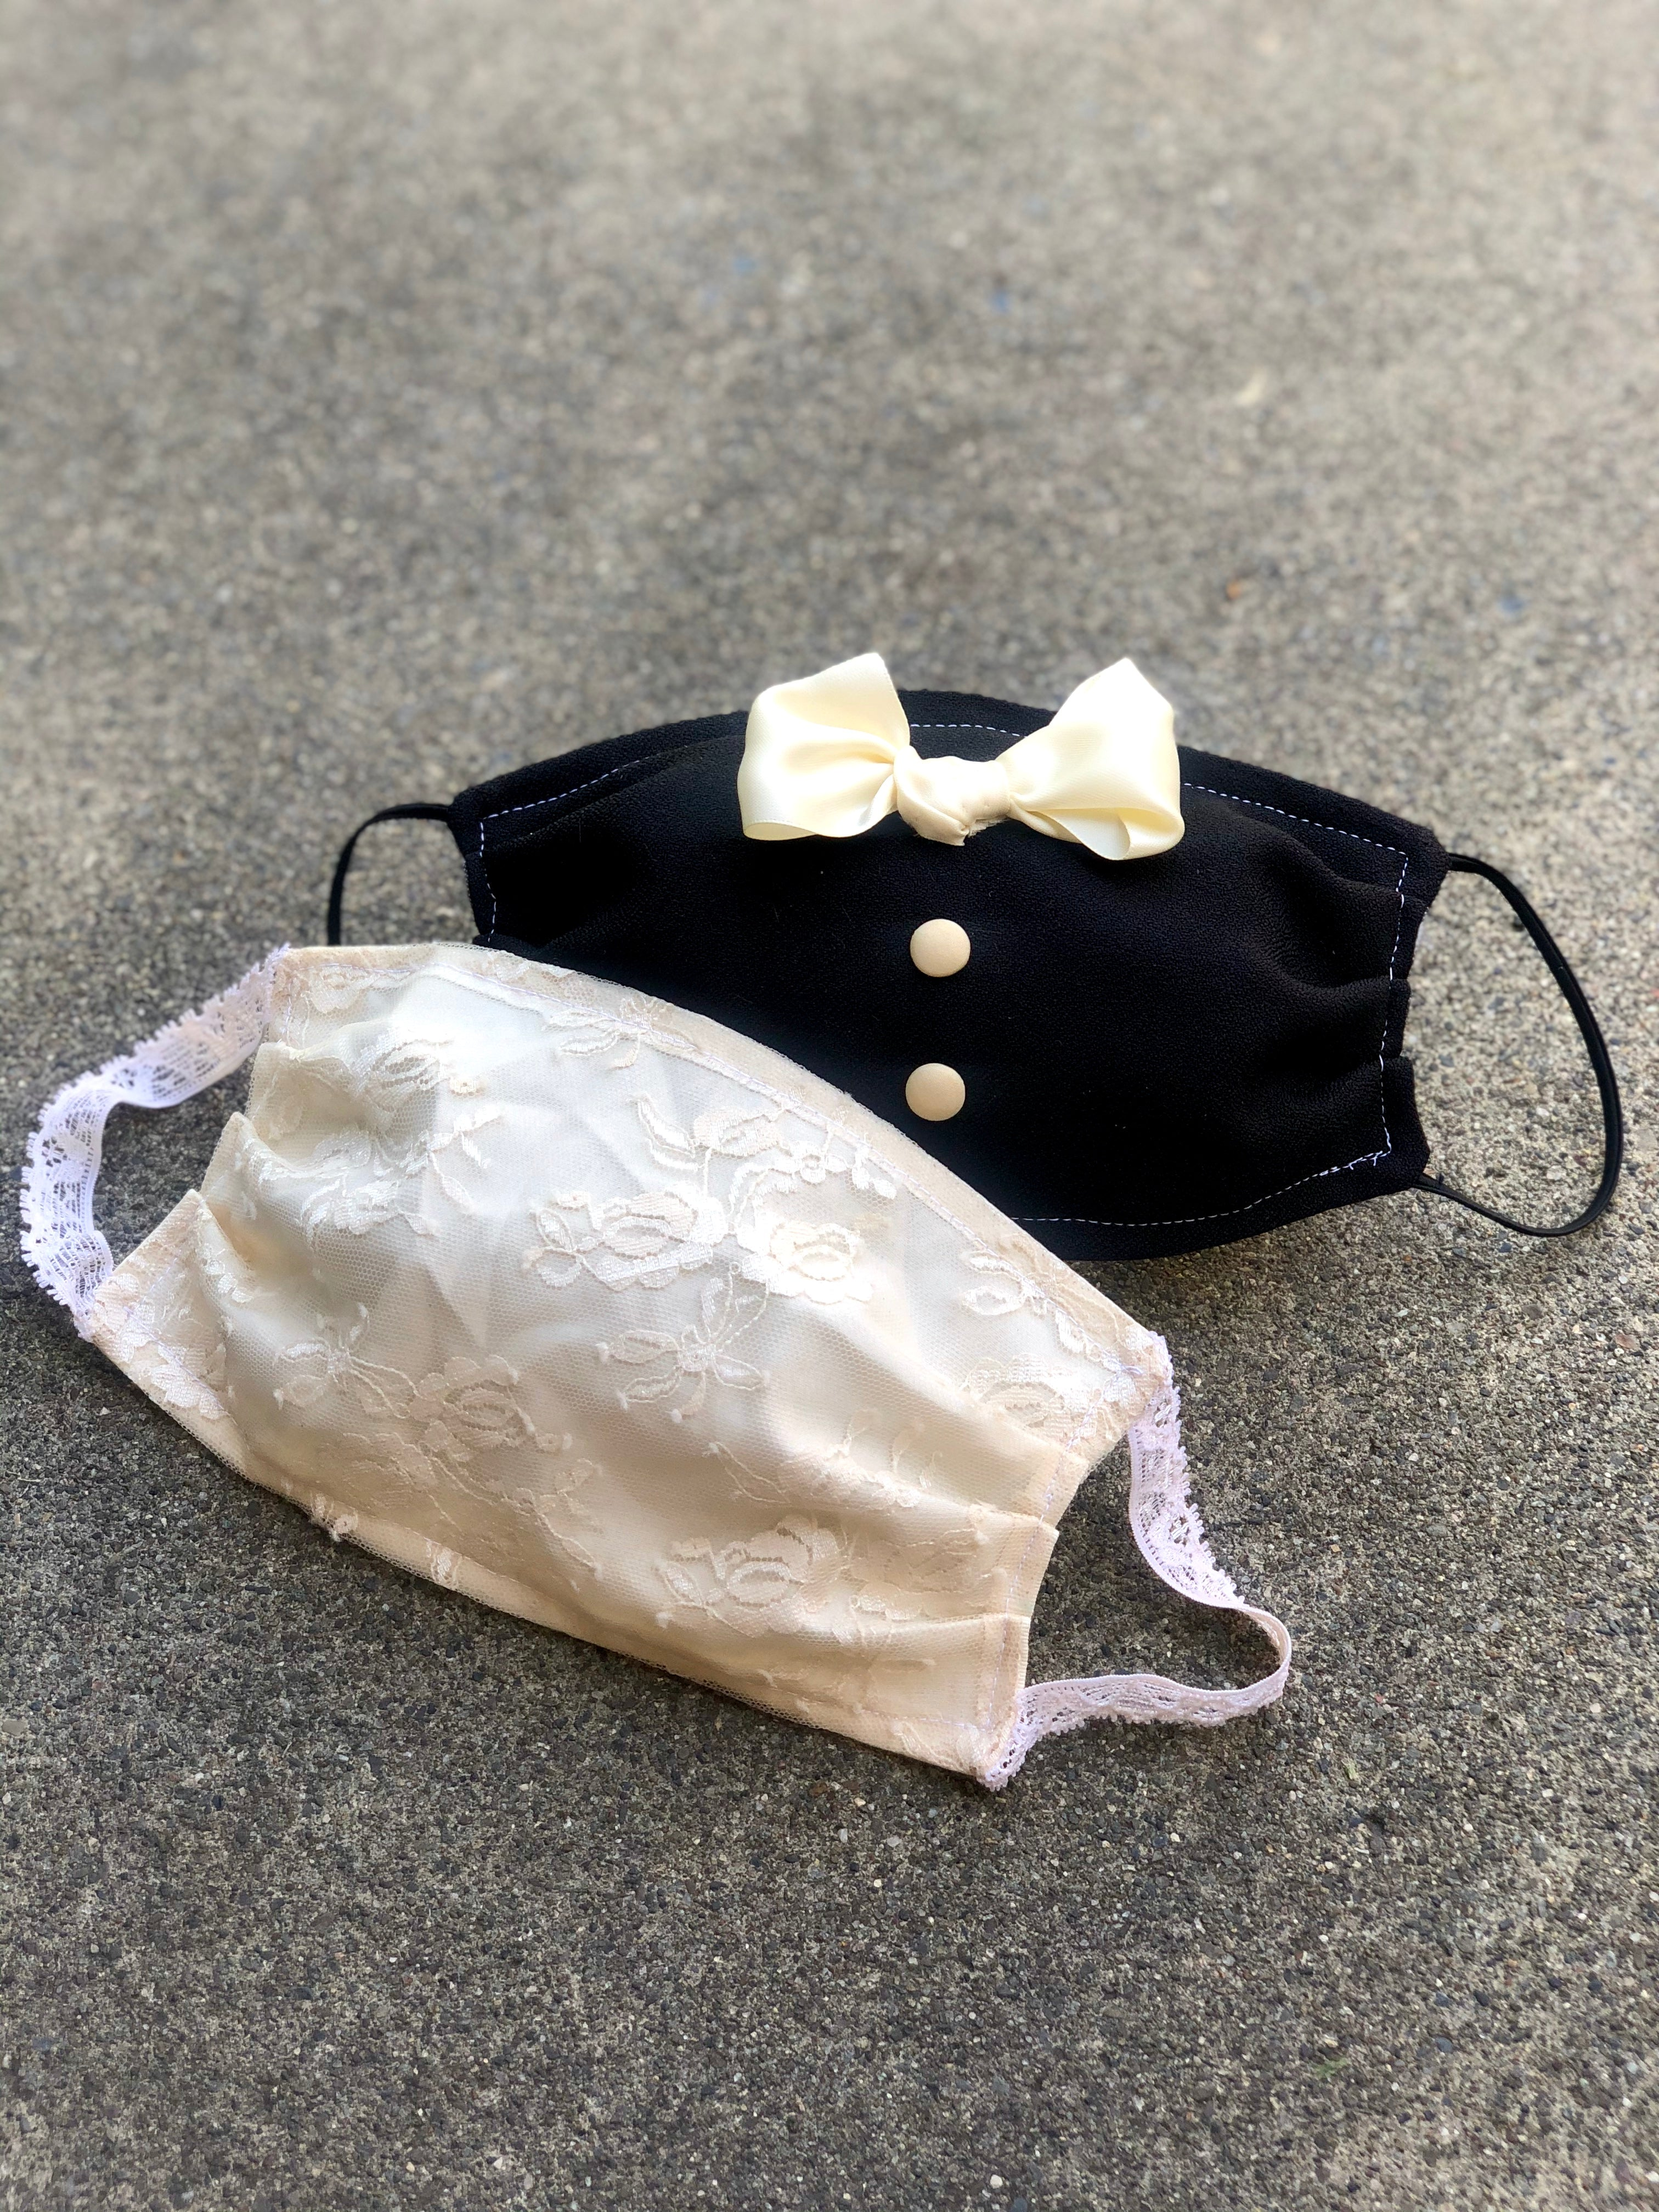 Wedding Face Mask Set for Bride and Groom, Tuxedo and Lace Double Layer Face Cover